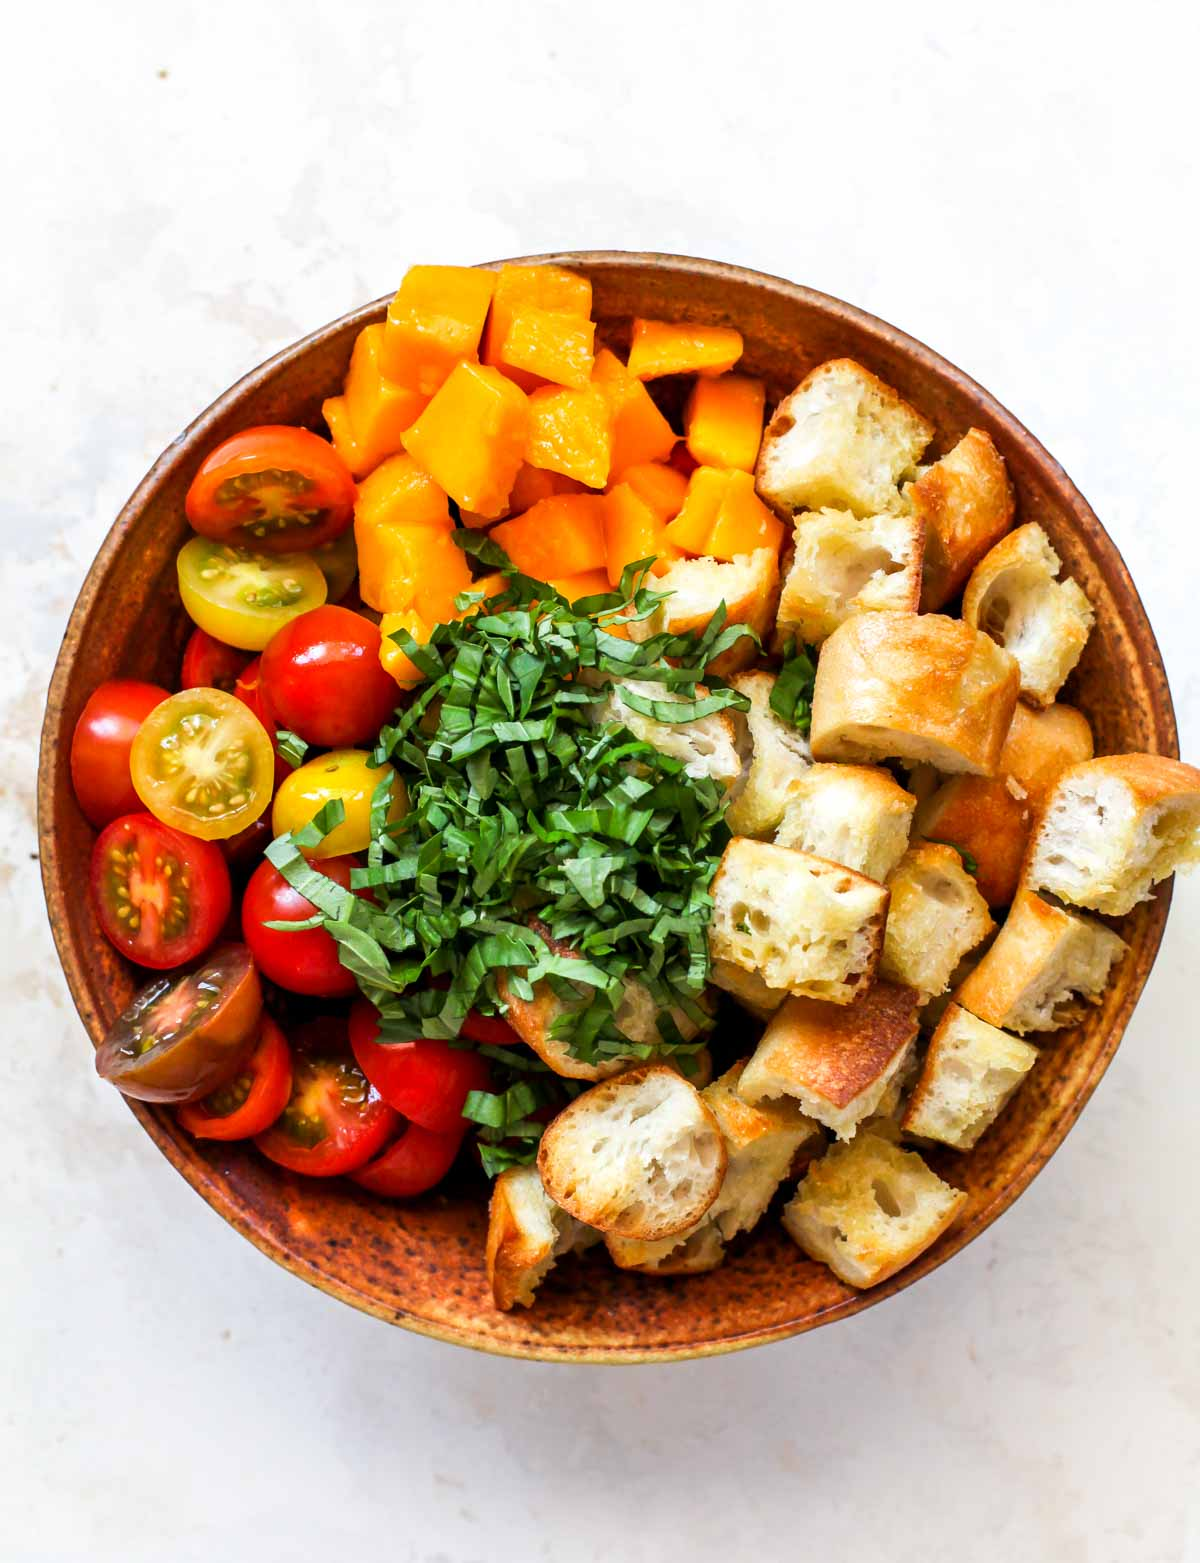 Tomatoes, cubed bread, basil, and mango in a large orange bowl